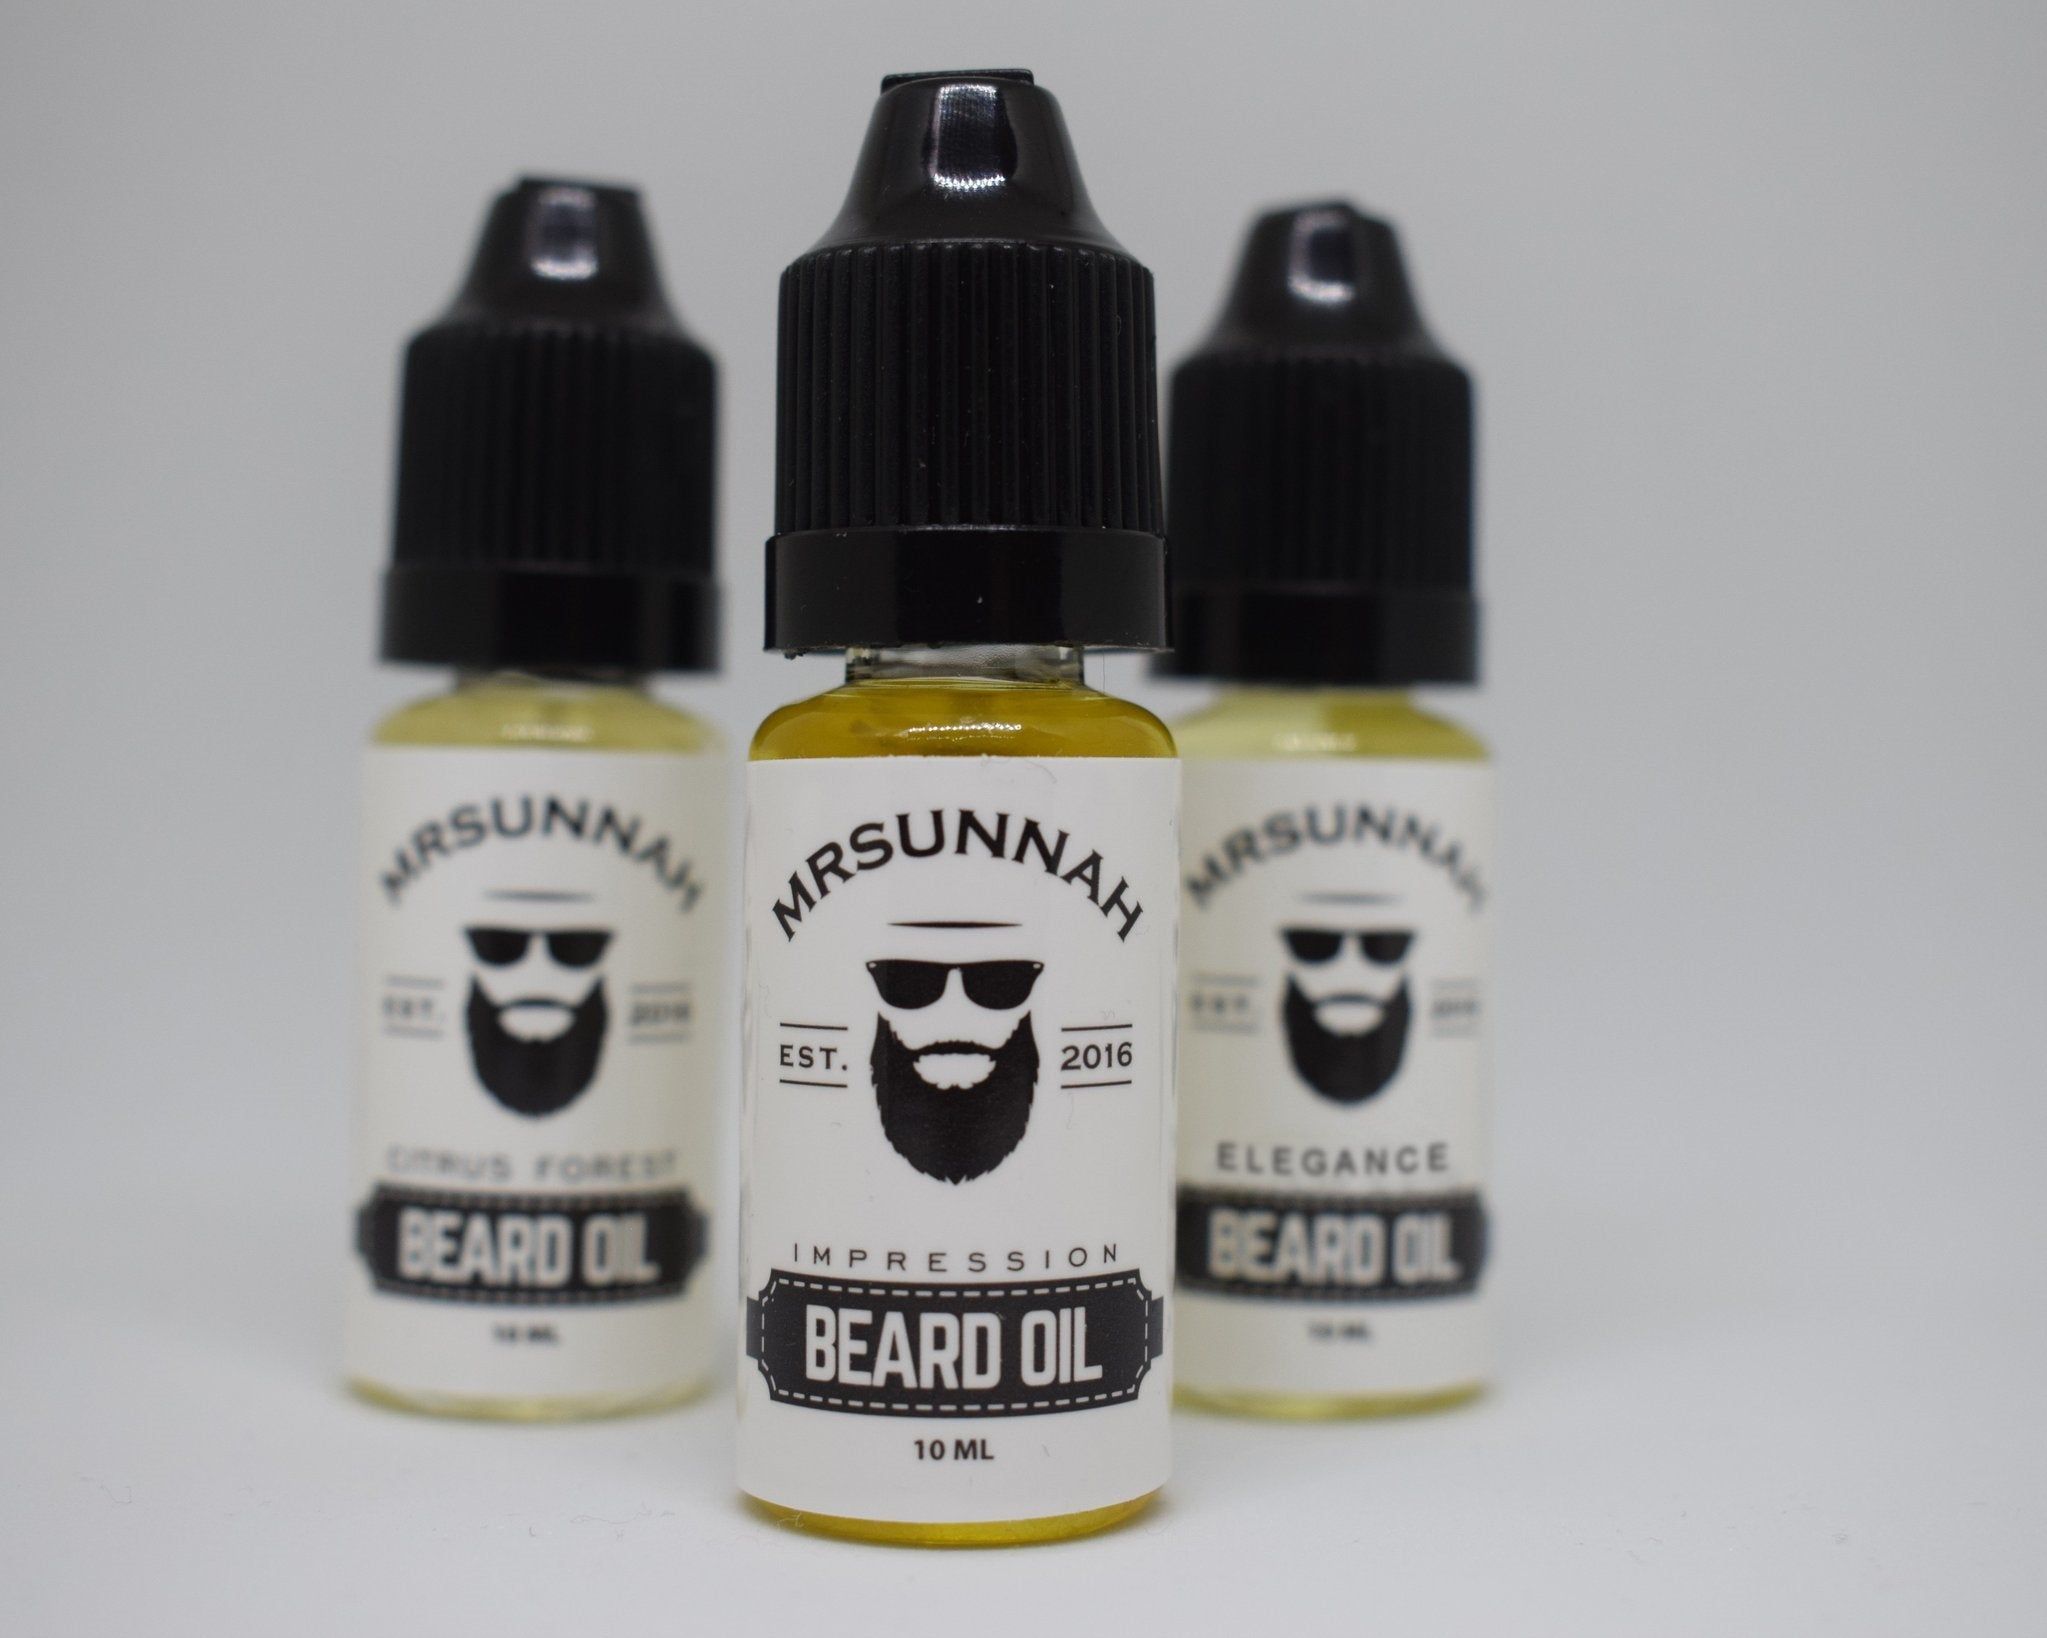 3 Beard Oil Set (10ml) - Mrsunnah Grooming Co